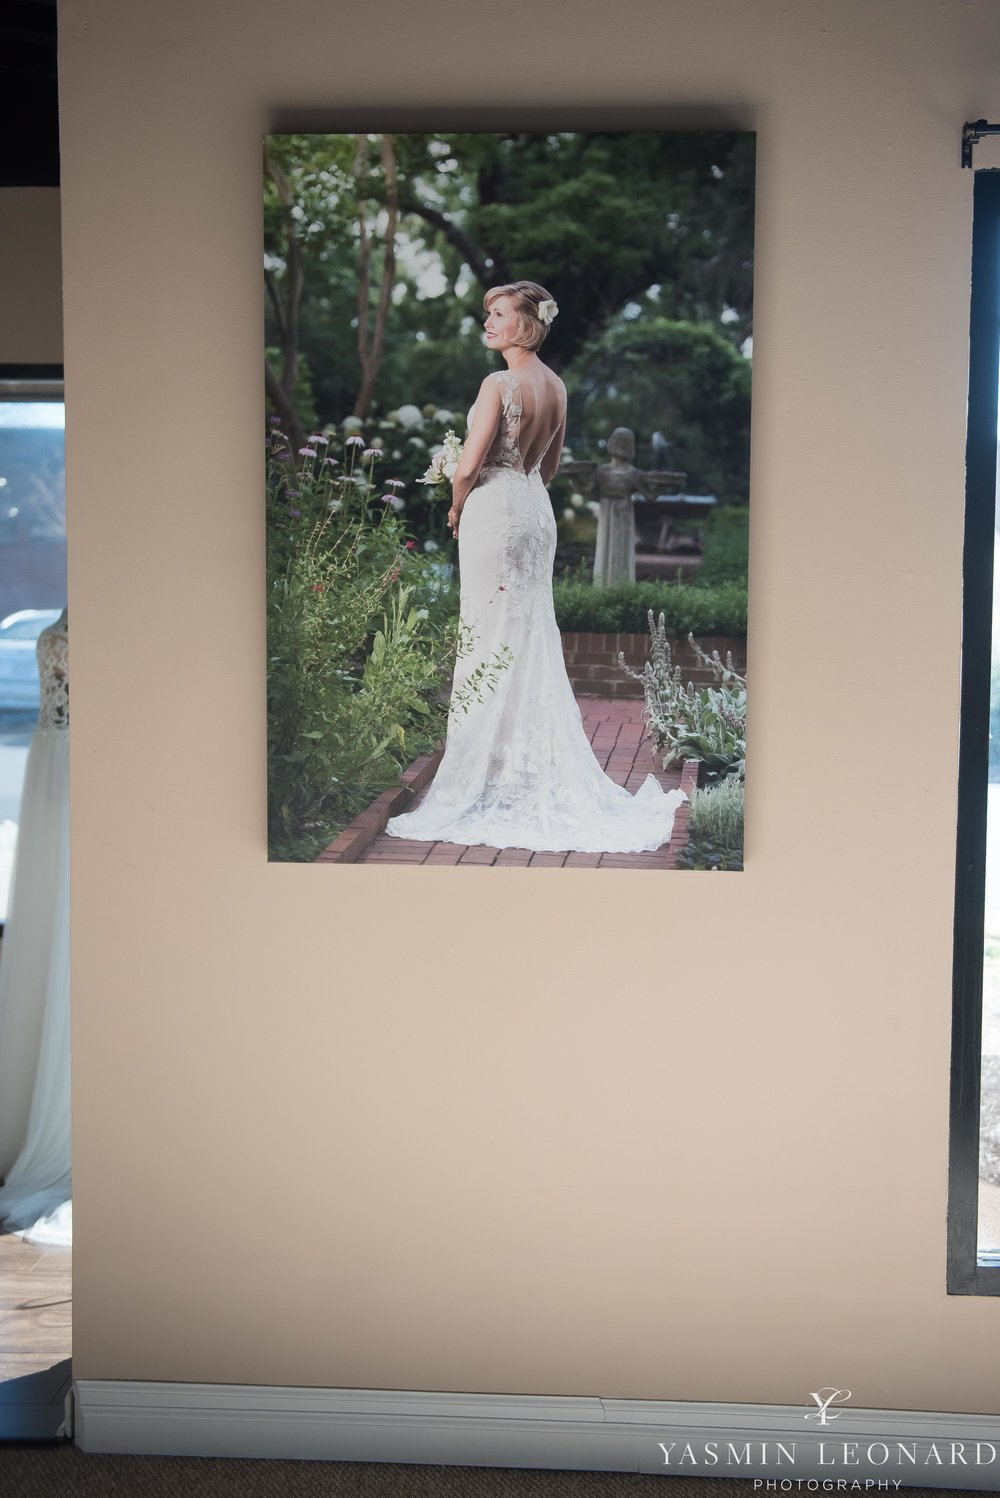 Dashing Dames Bridal and Boutique - High Point Bridal Shop - Bridal Store in High Point - Yasmin Leonard Photography-4.jpg